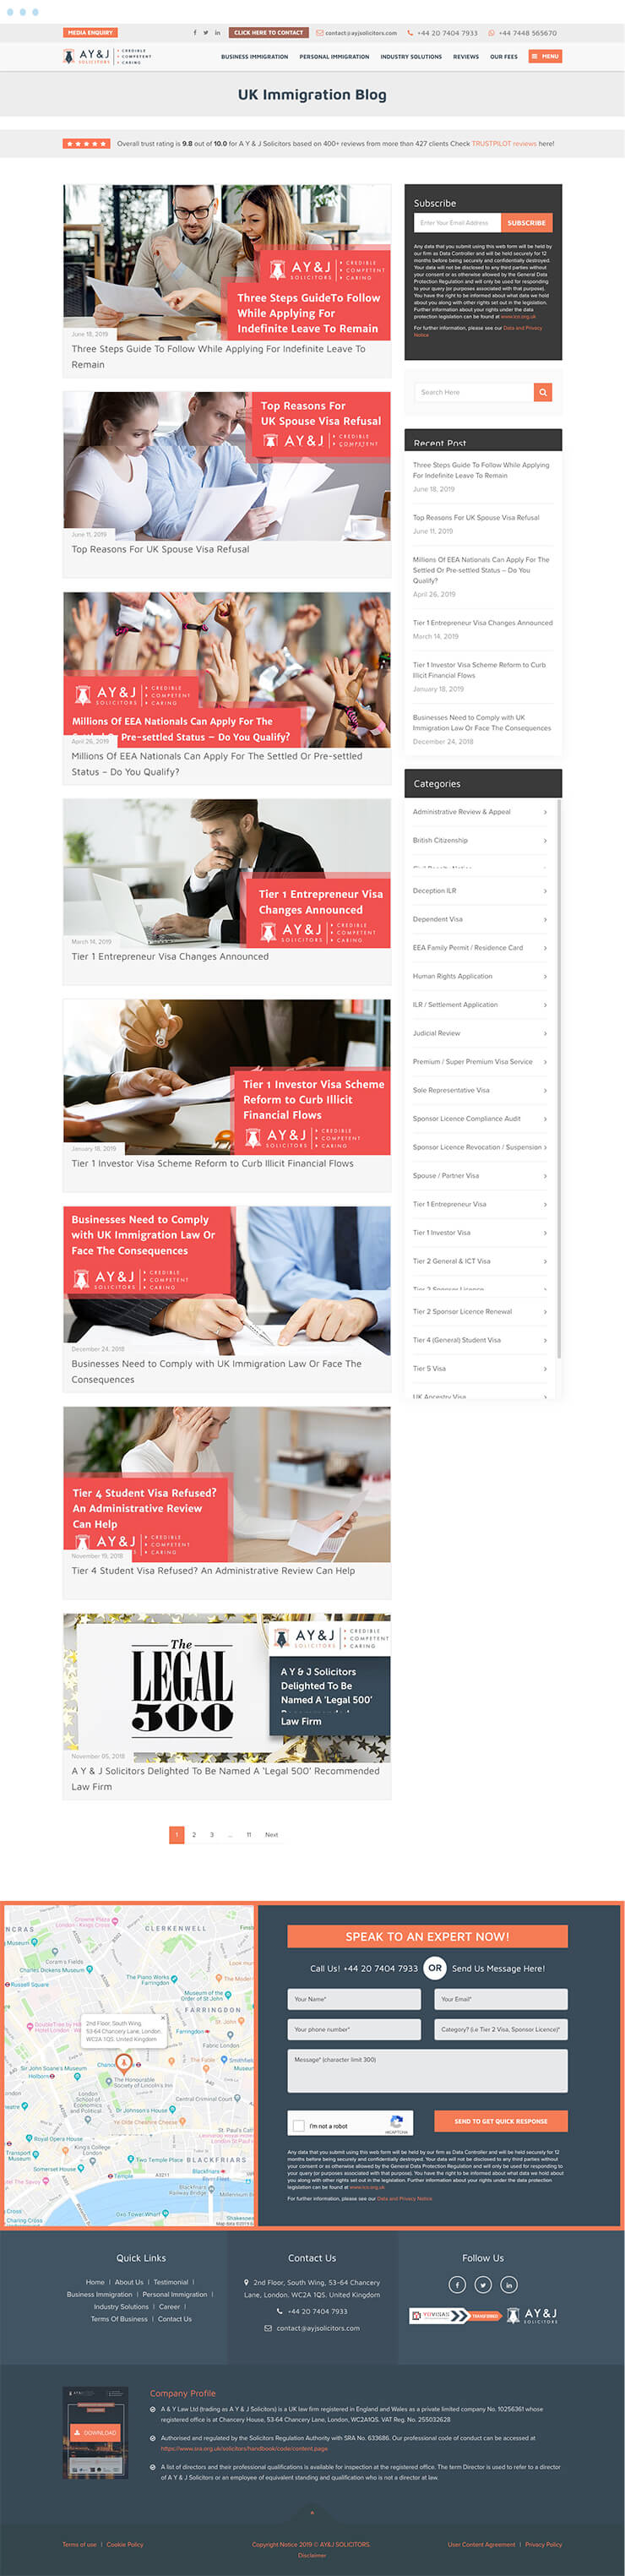 AYJ Solicitors Mockup Blog